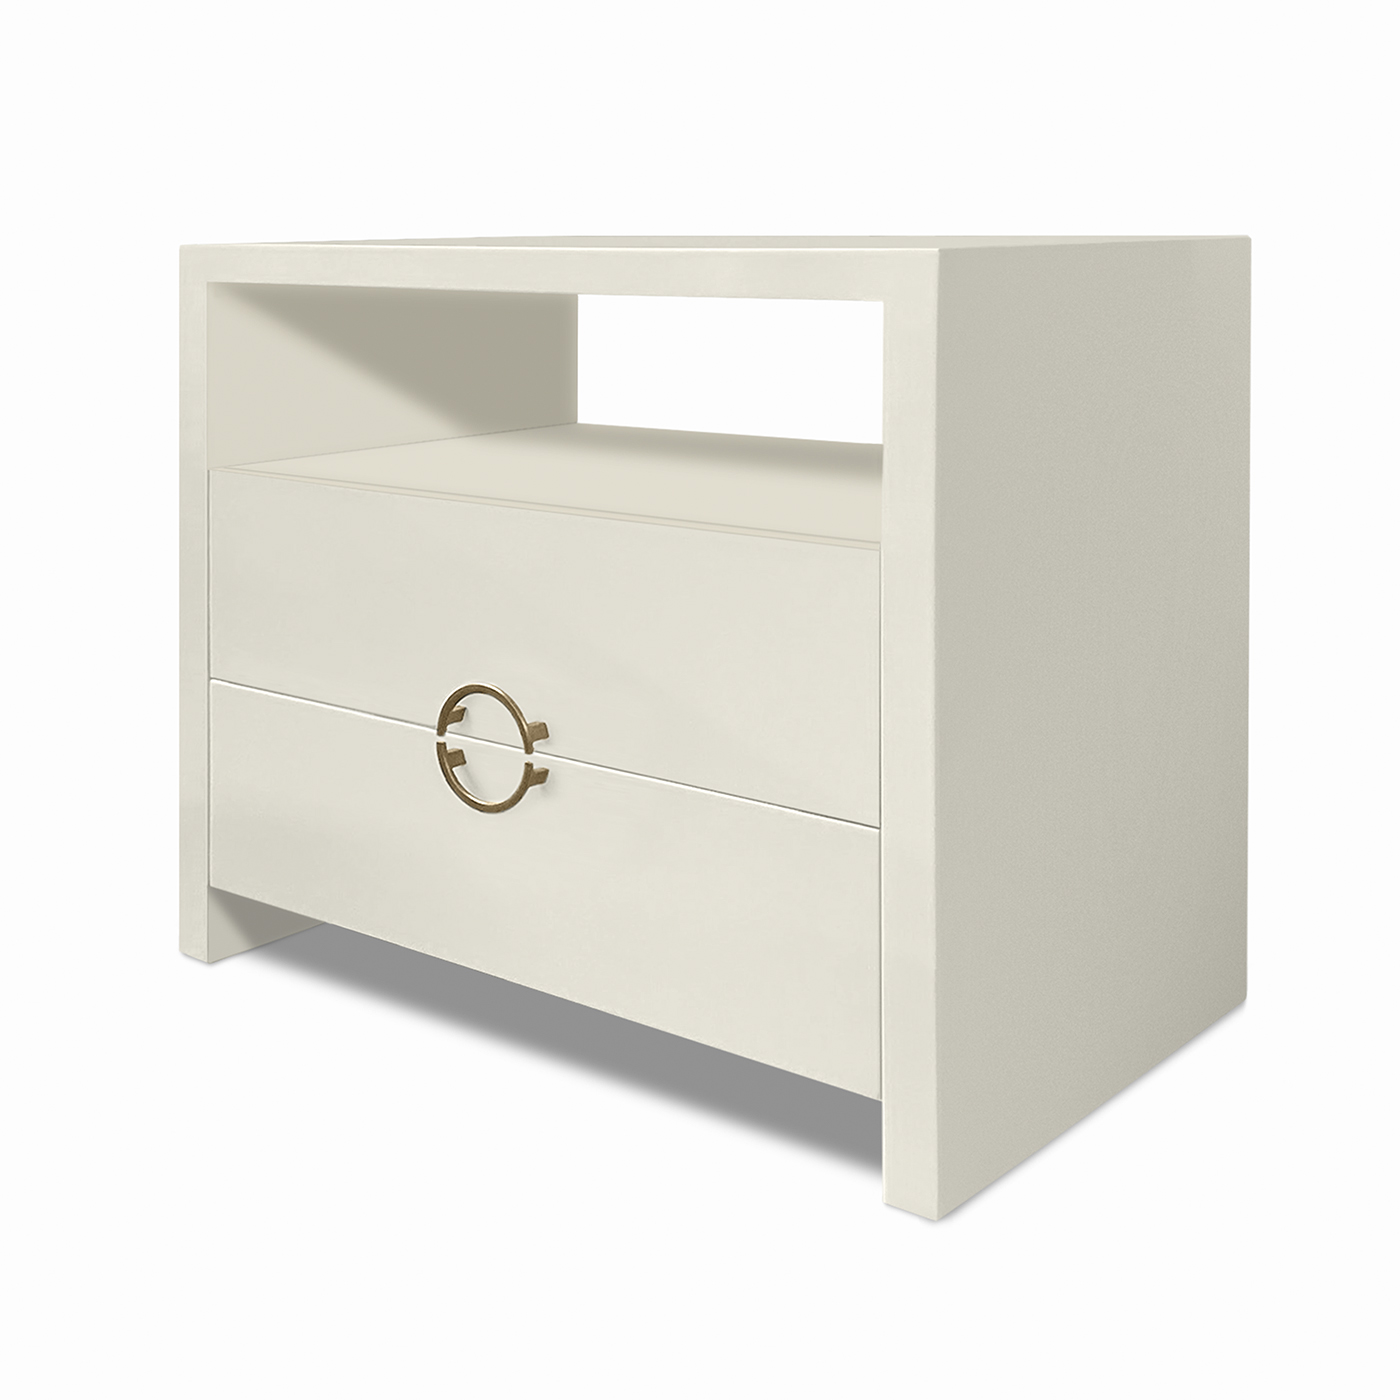 Simon Side Table, Painted